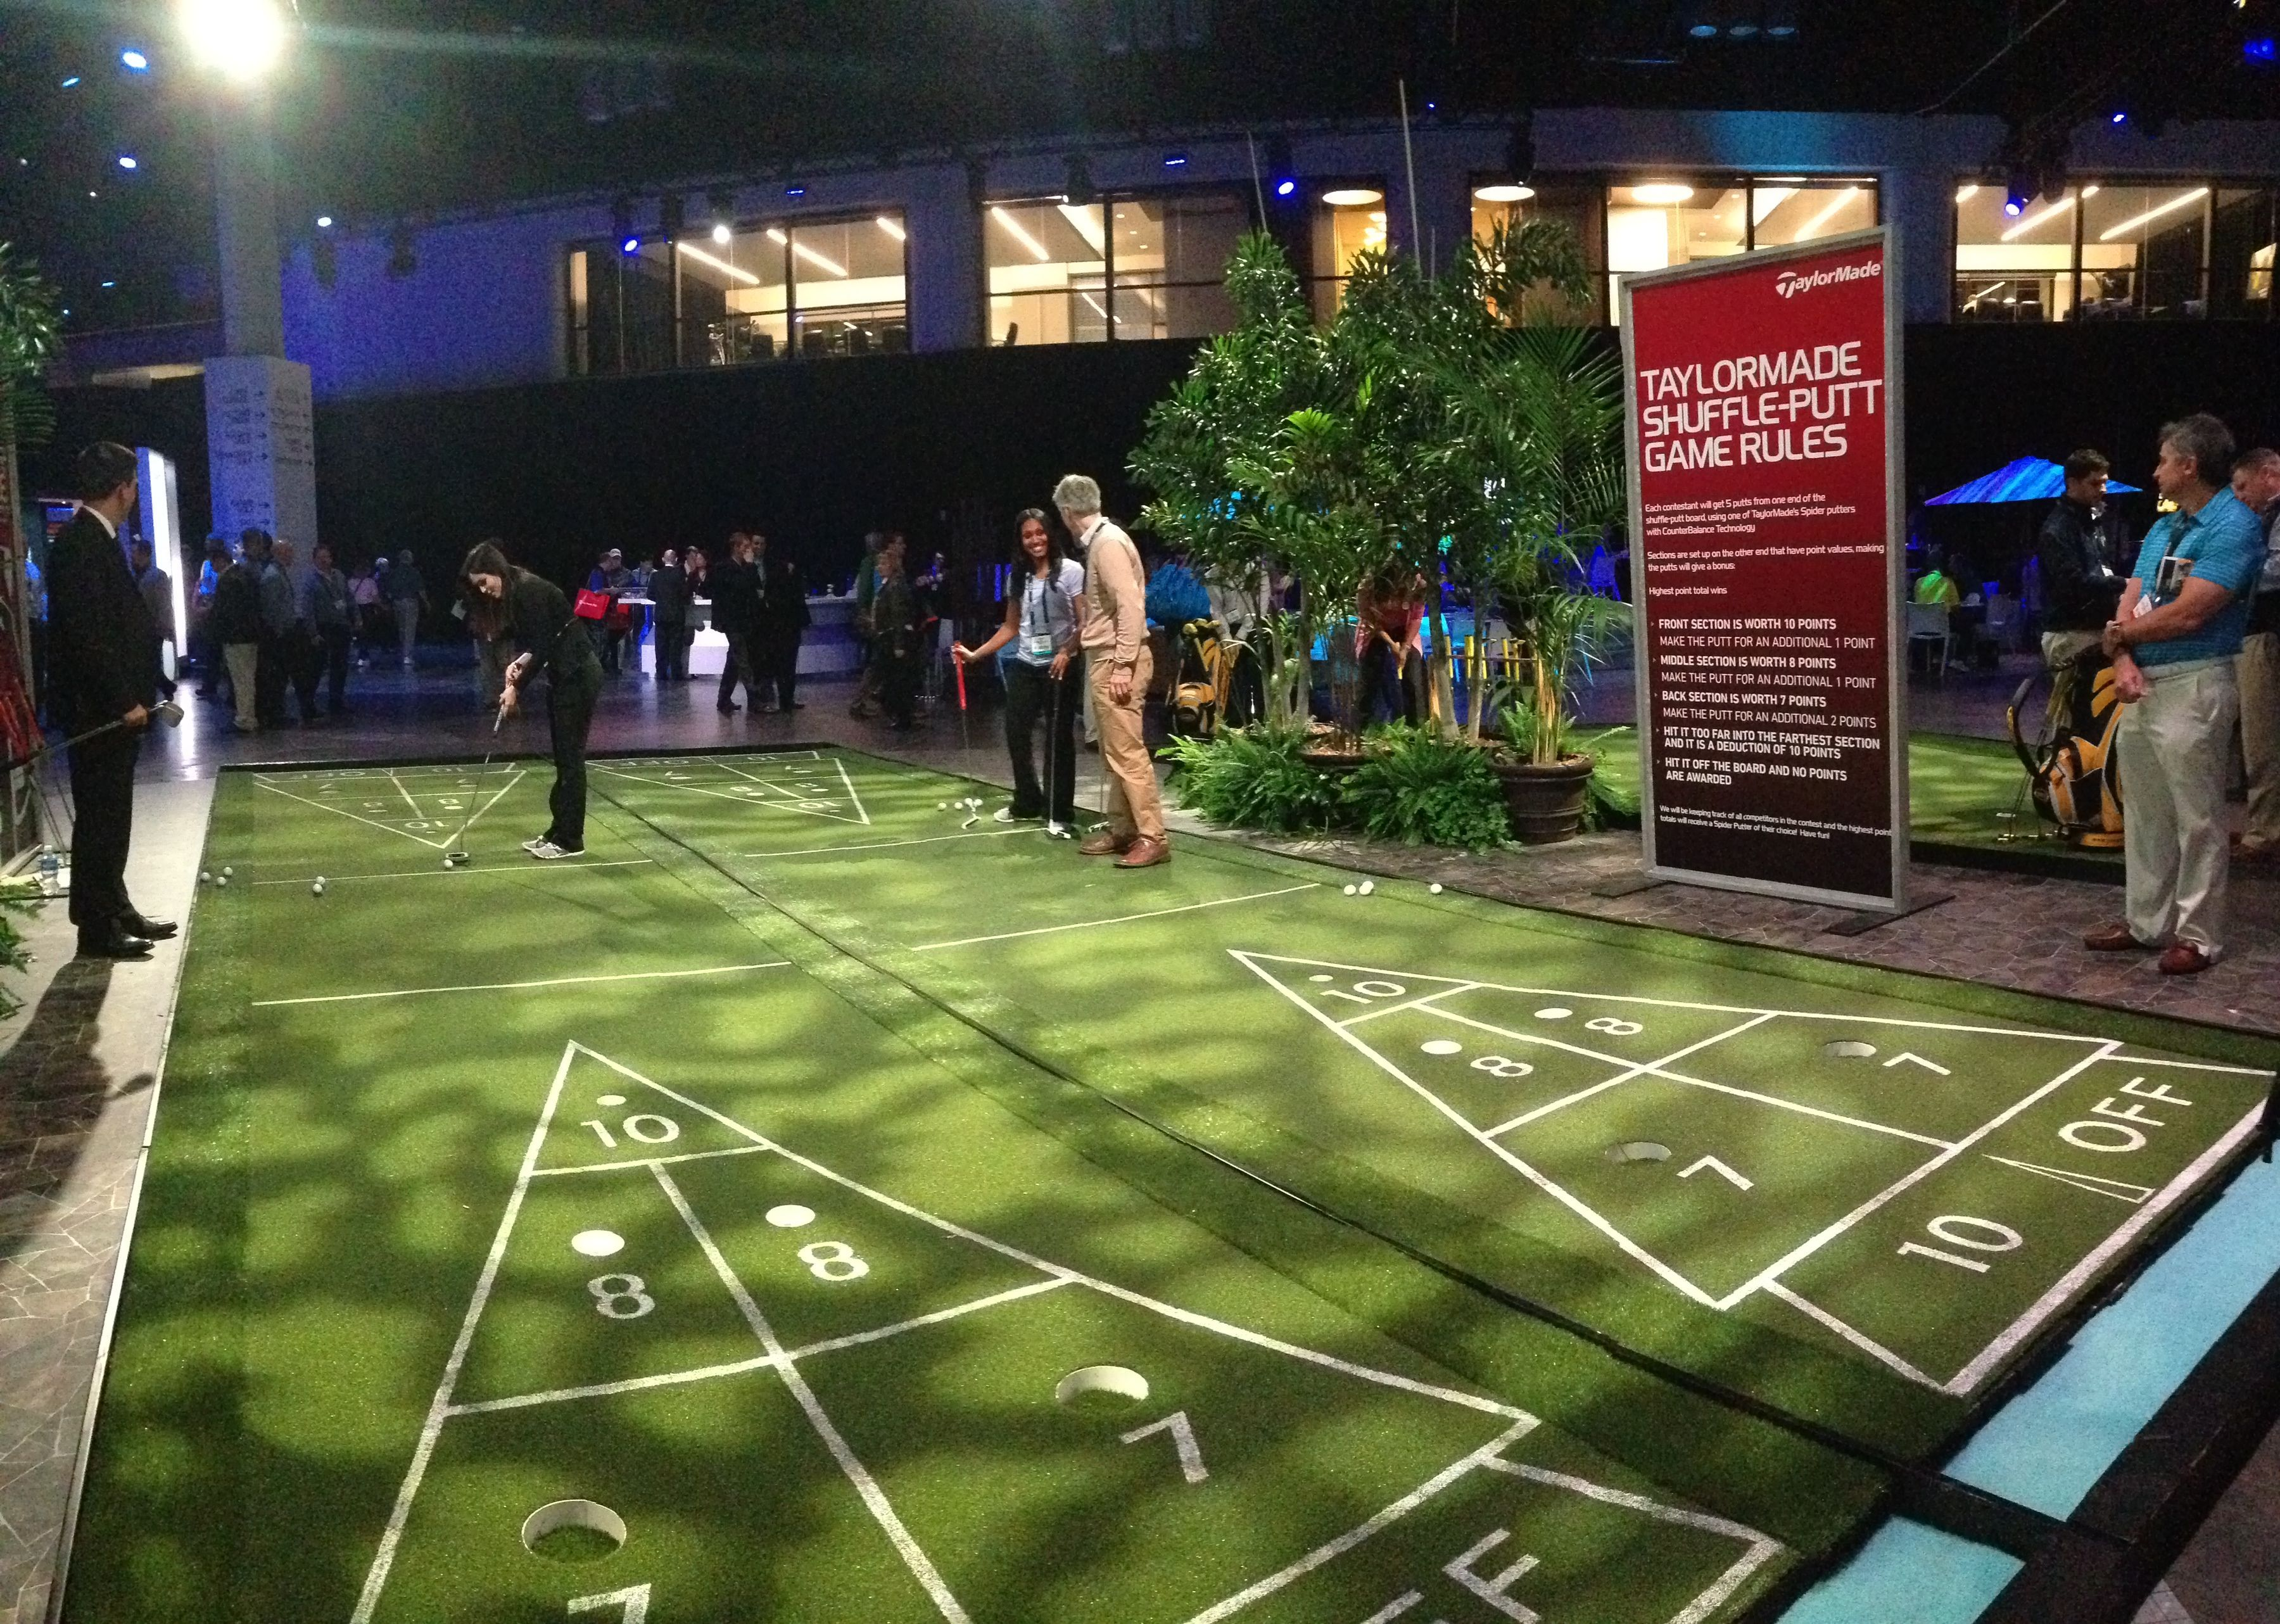 Taylormade golf booth shuffle putt enjoyed playing this at the pga golf show 2014